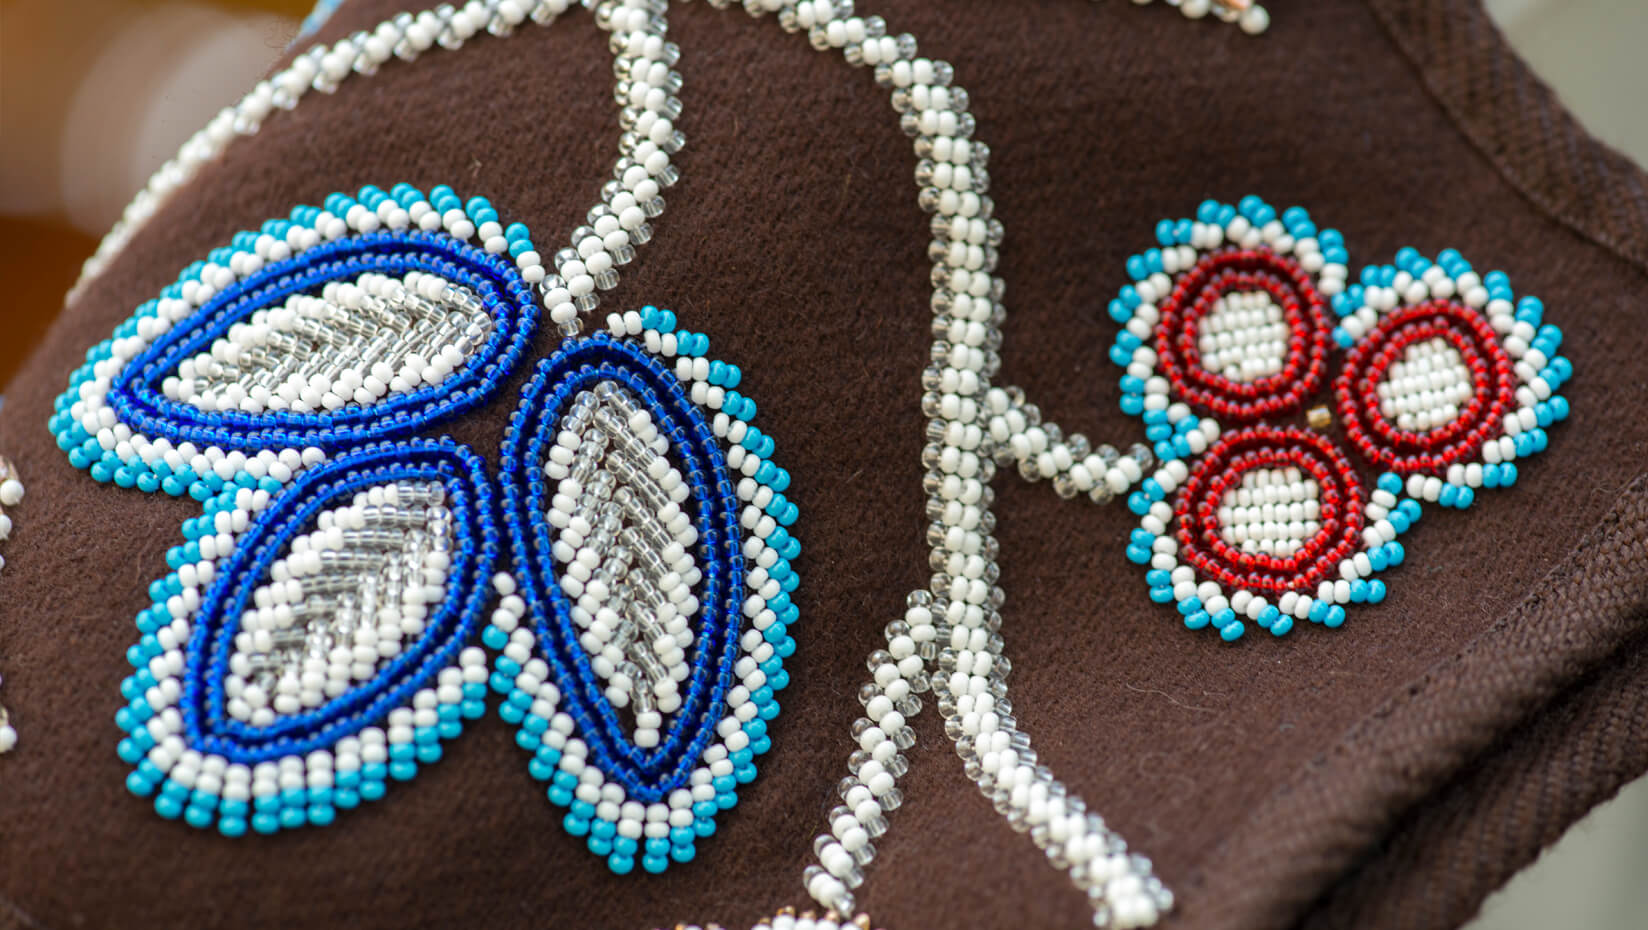 Beadwork done by Jennifer Neptune